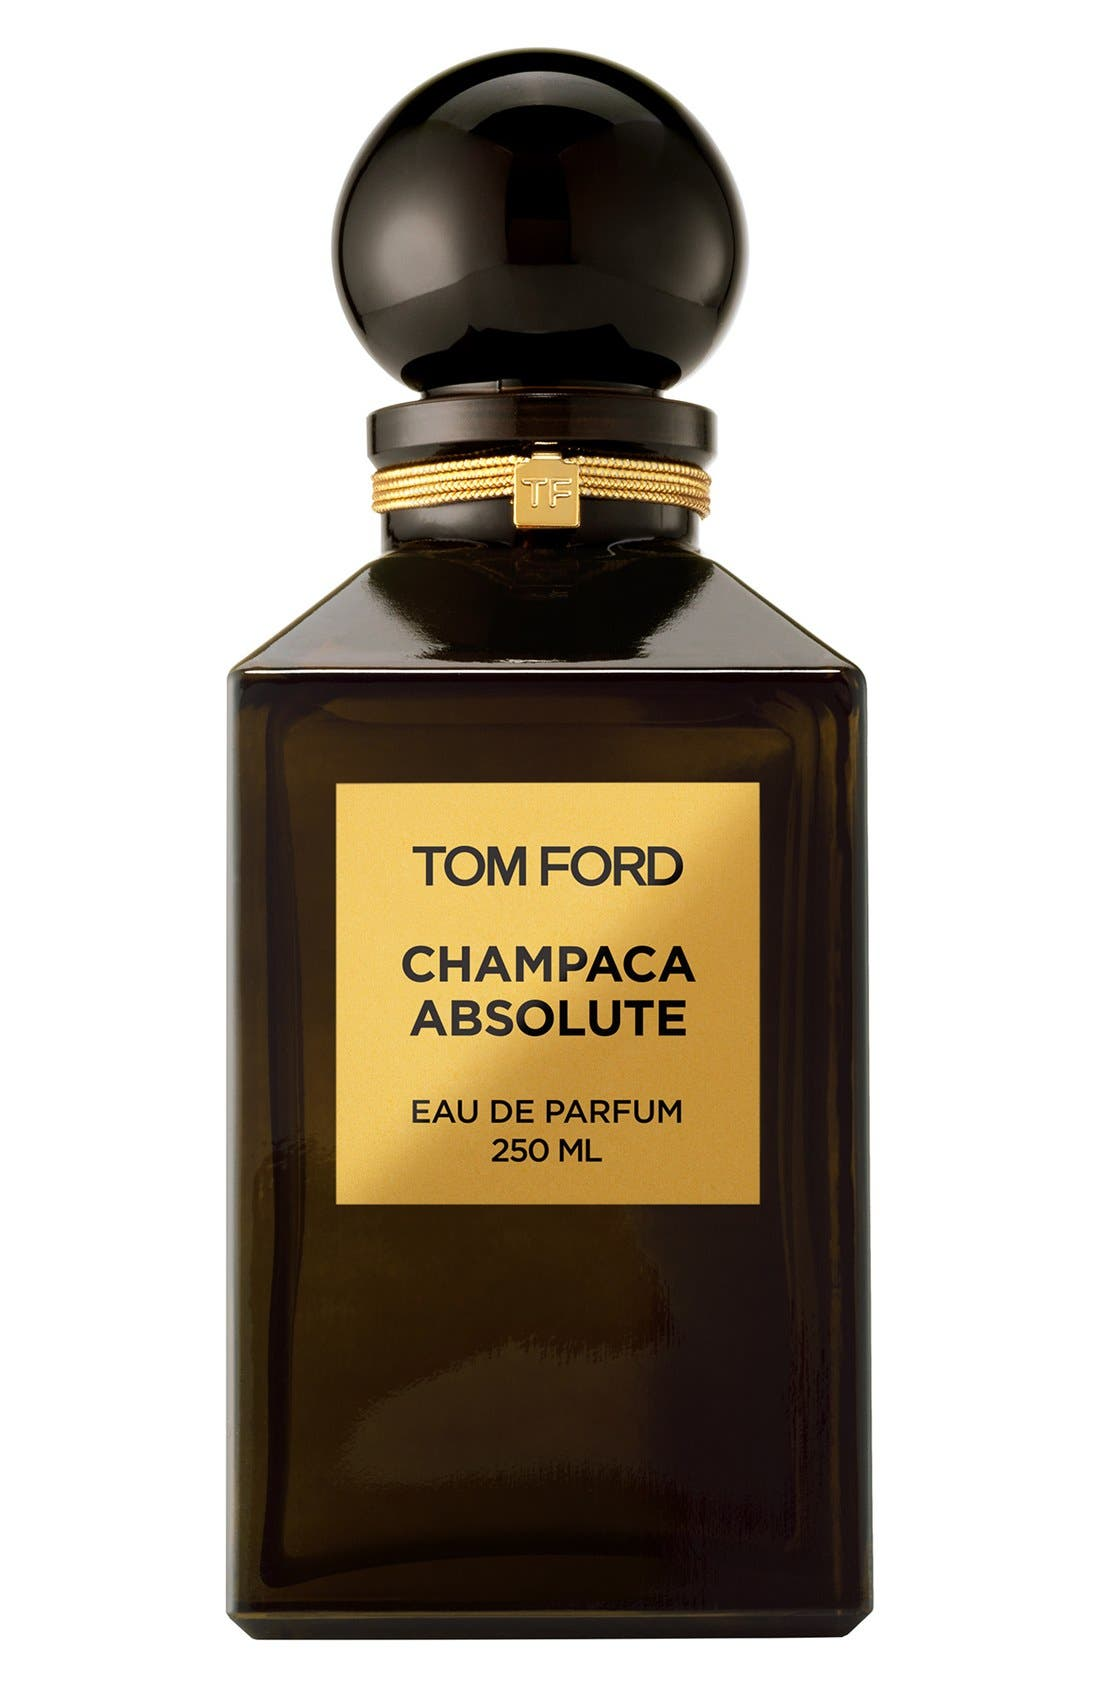 Tom Ford Private Blend Champaca Absolute Eau de Parfum Decanter